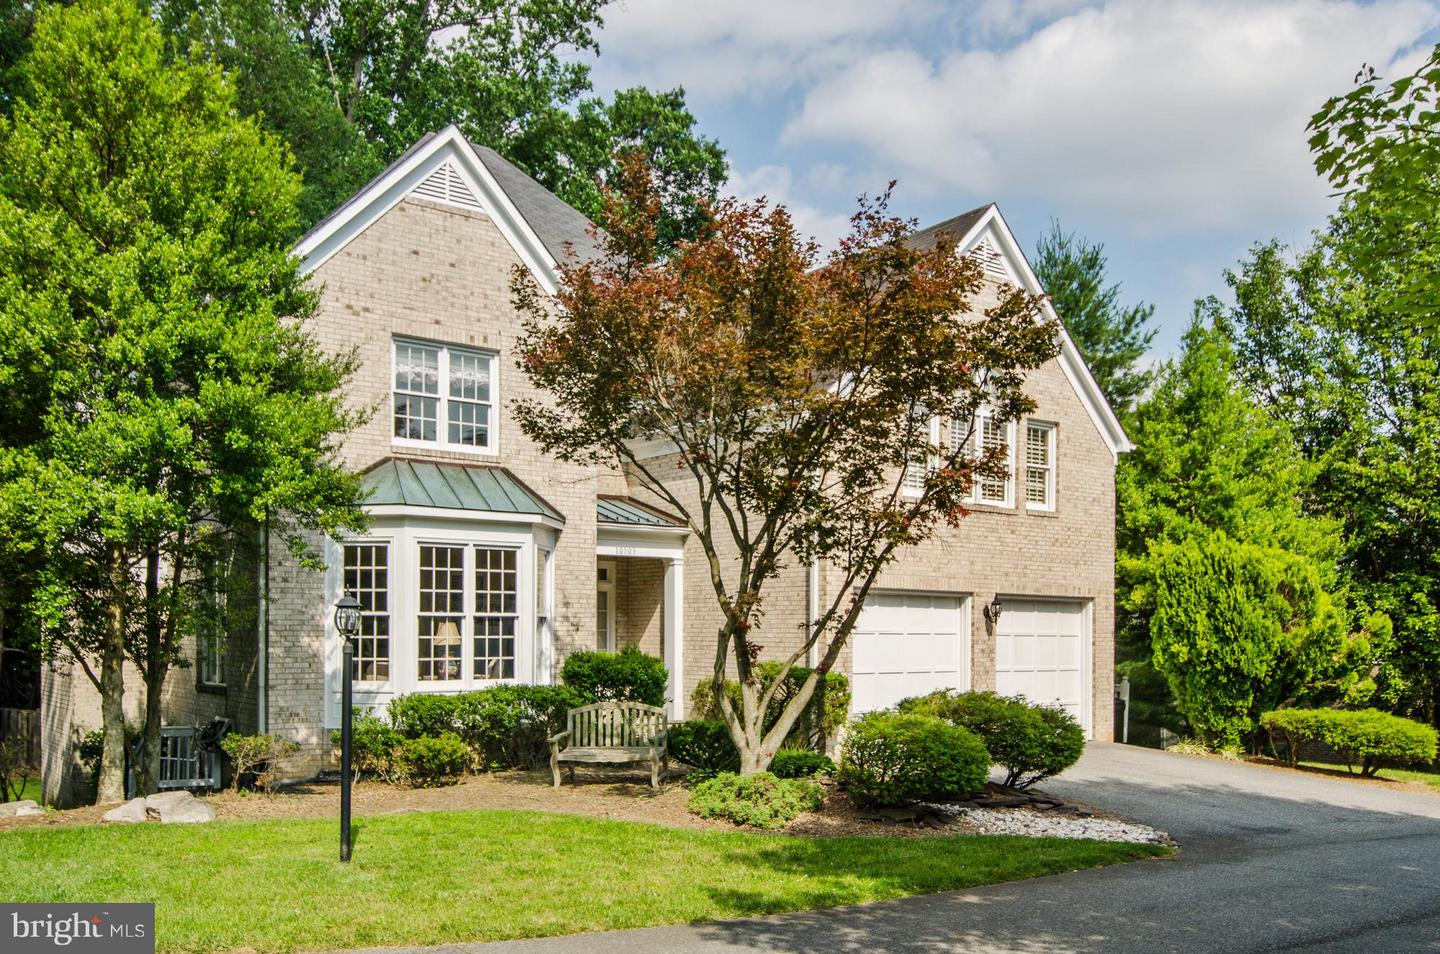 10503 DEMOCRACY LANE, POTOMAC, Maryland